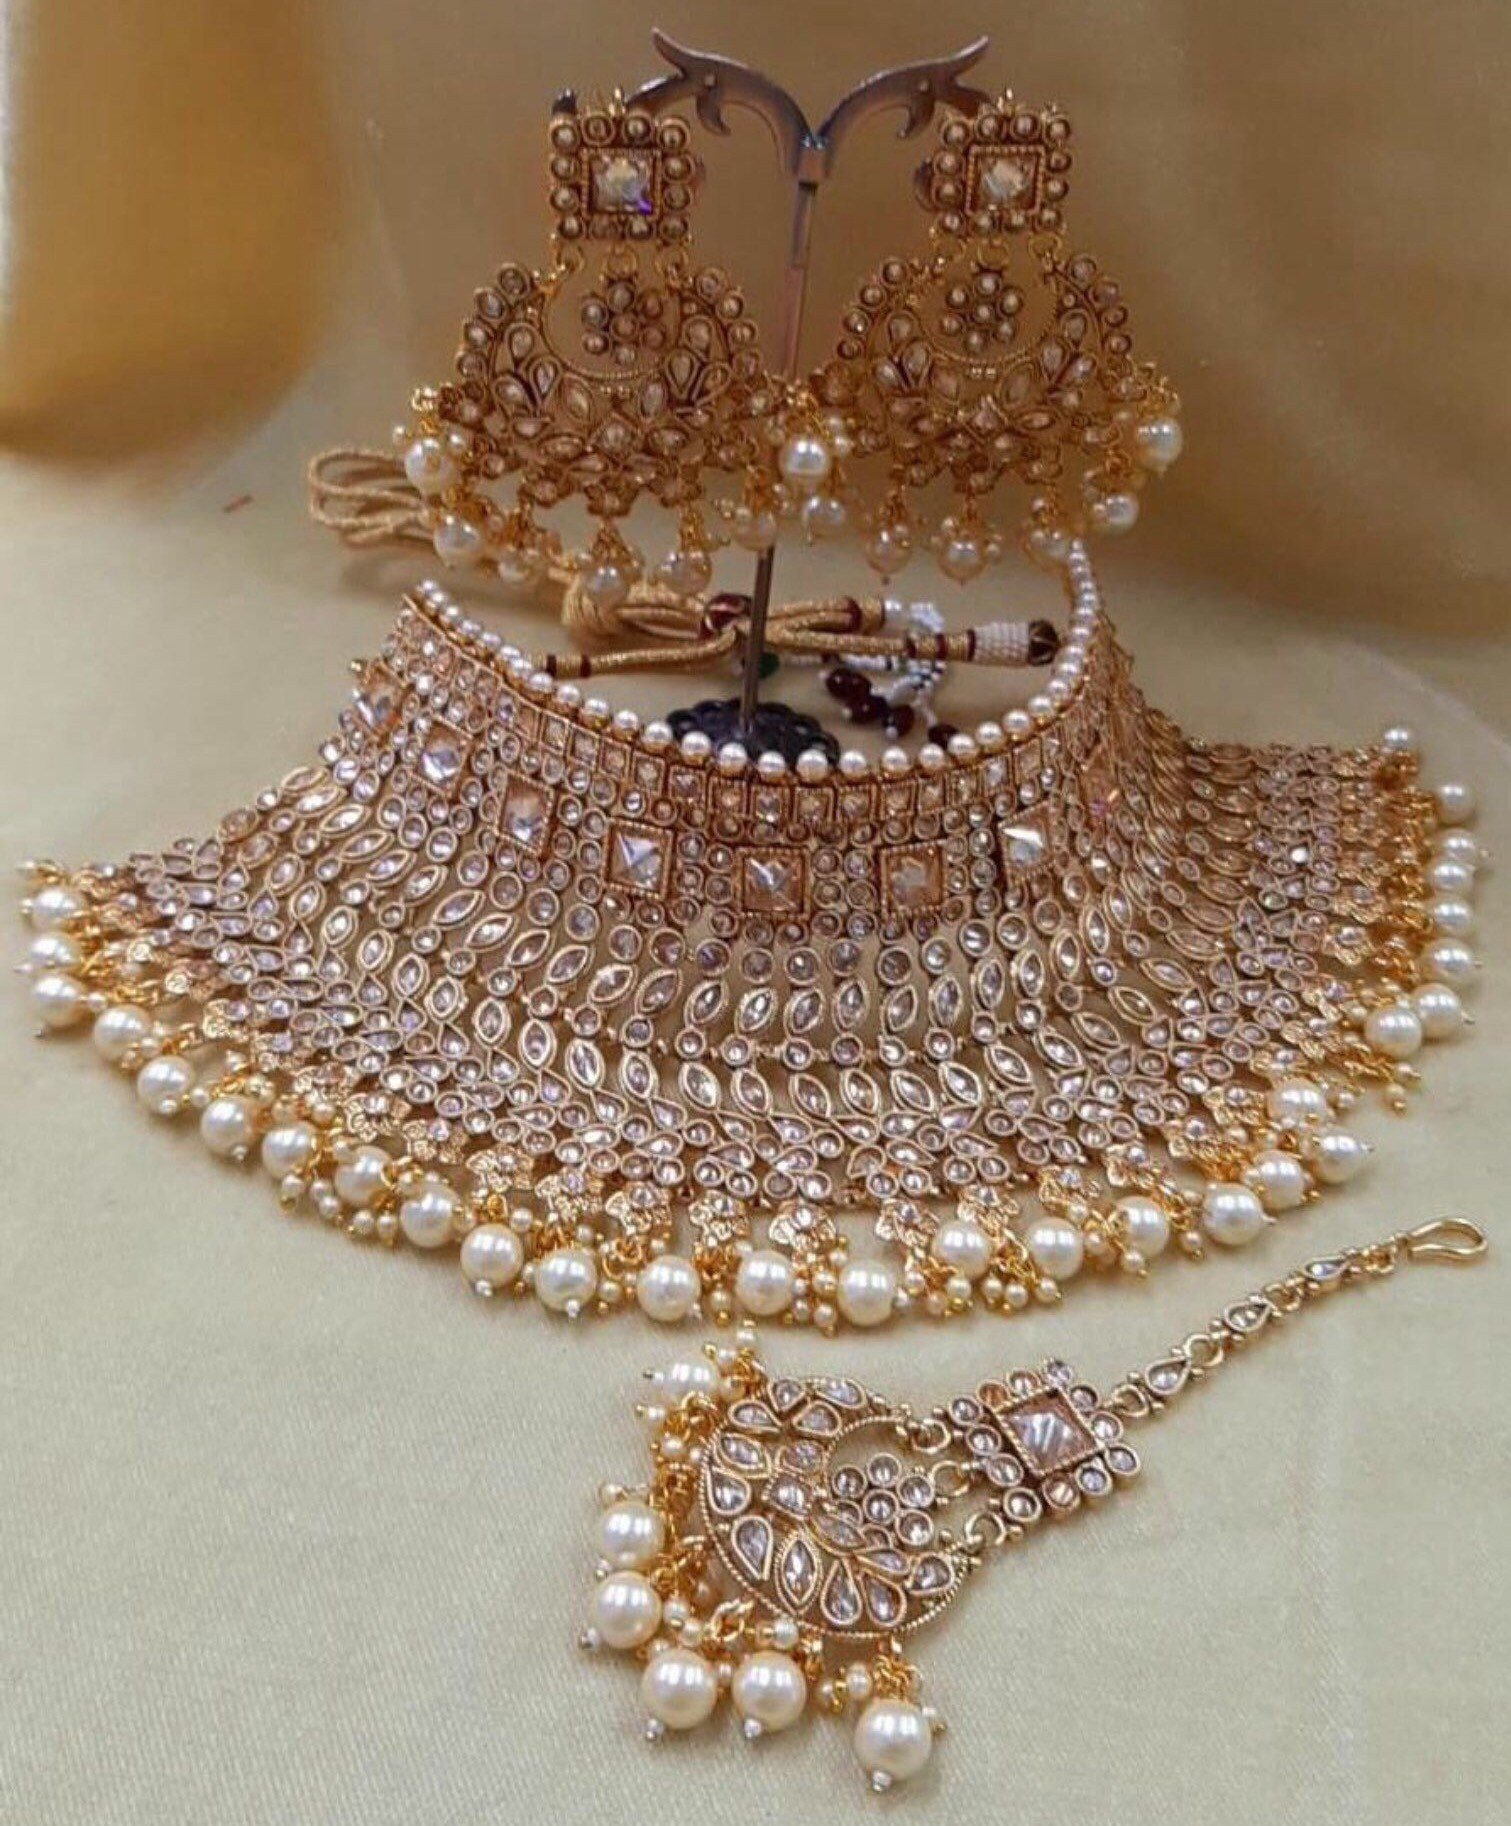 Amani Crystal Collection Classic Indian Bridal Jewellery Sets Indian Bridal Jewelry Sets Indian Wedding Jewelry Sets Bridal Jewellery Indian